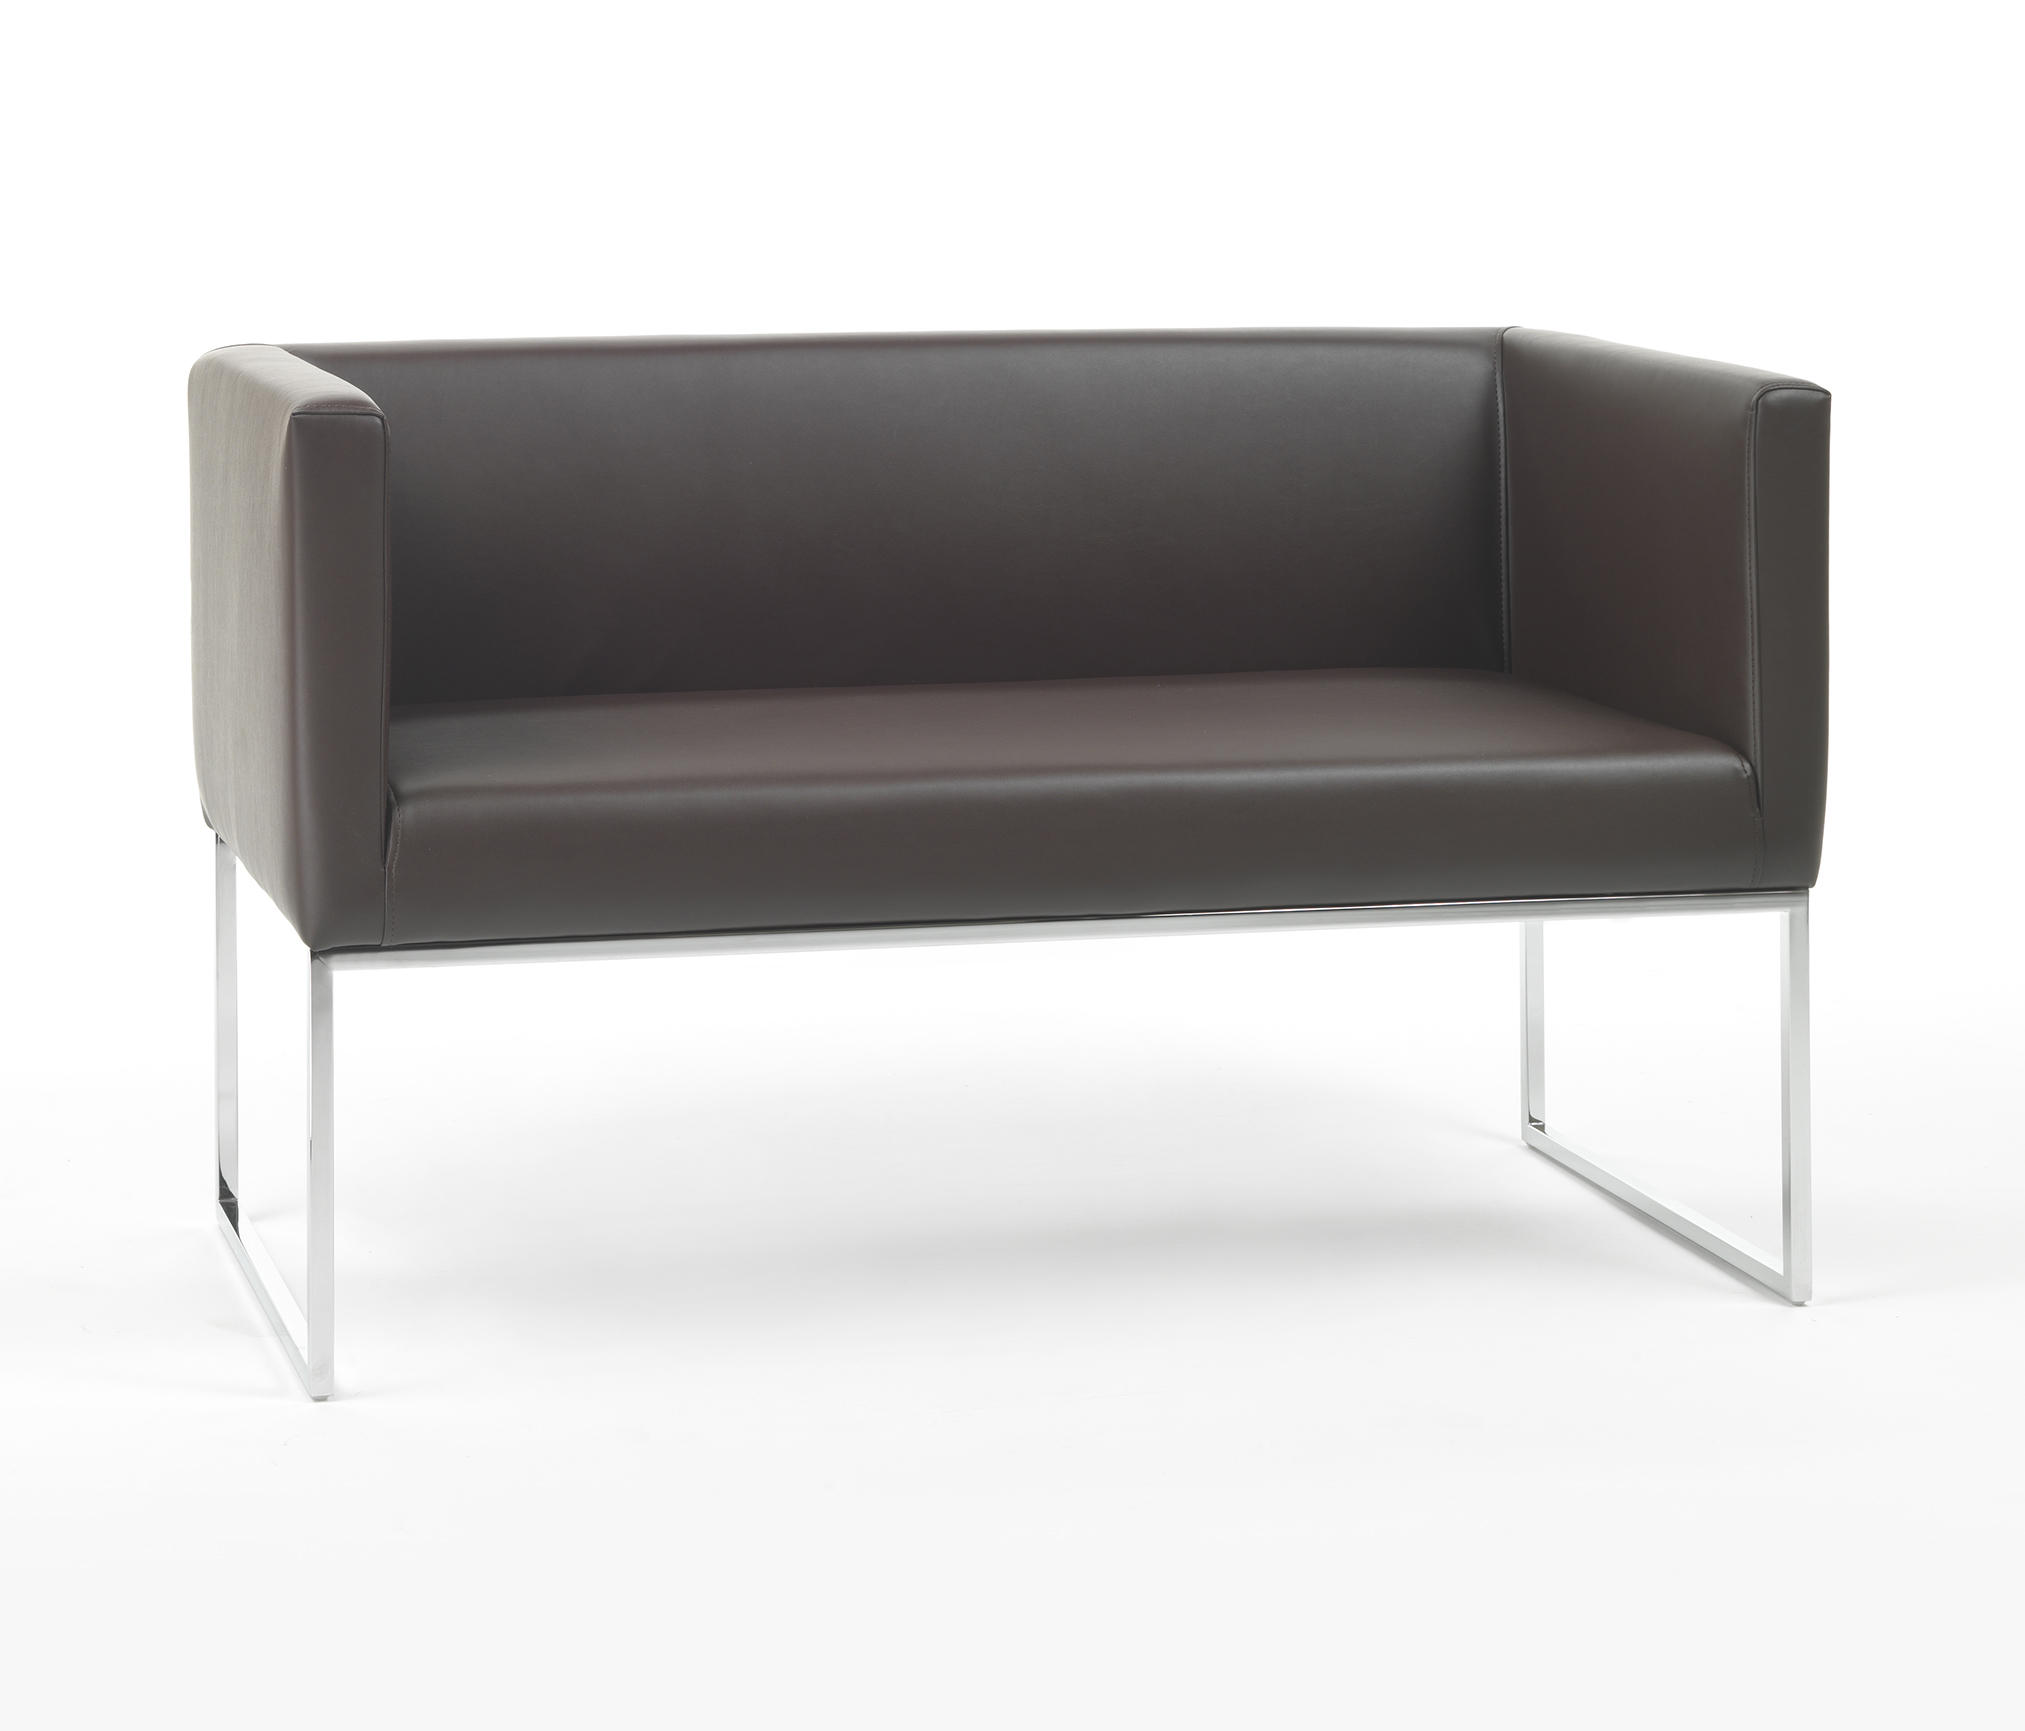 ascot mini sofa lounge sofas from giulio marelli. Black Bedroom Furniture Sets. Home Design Ideas